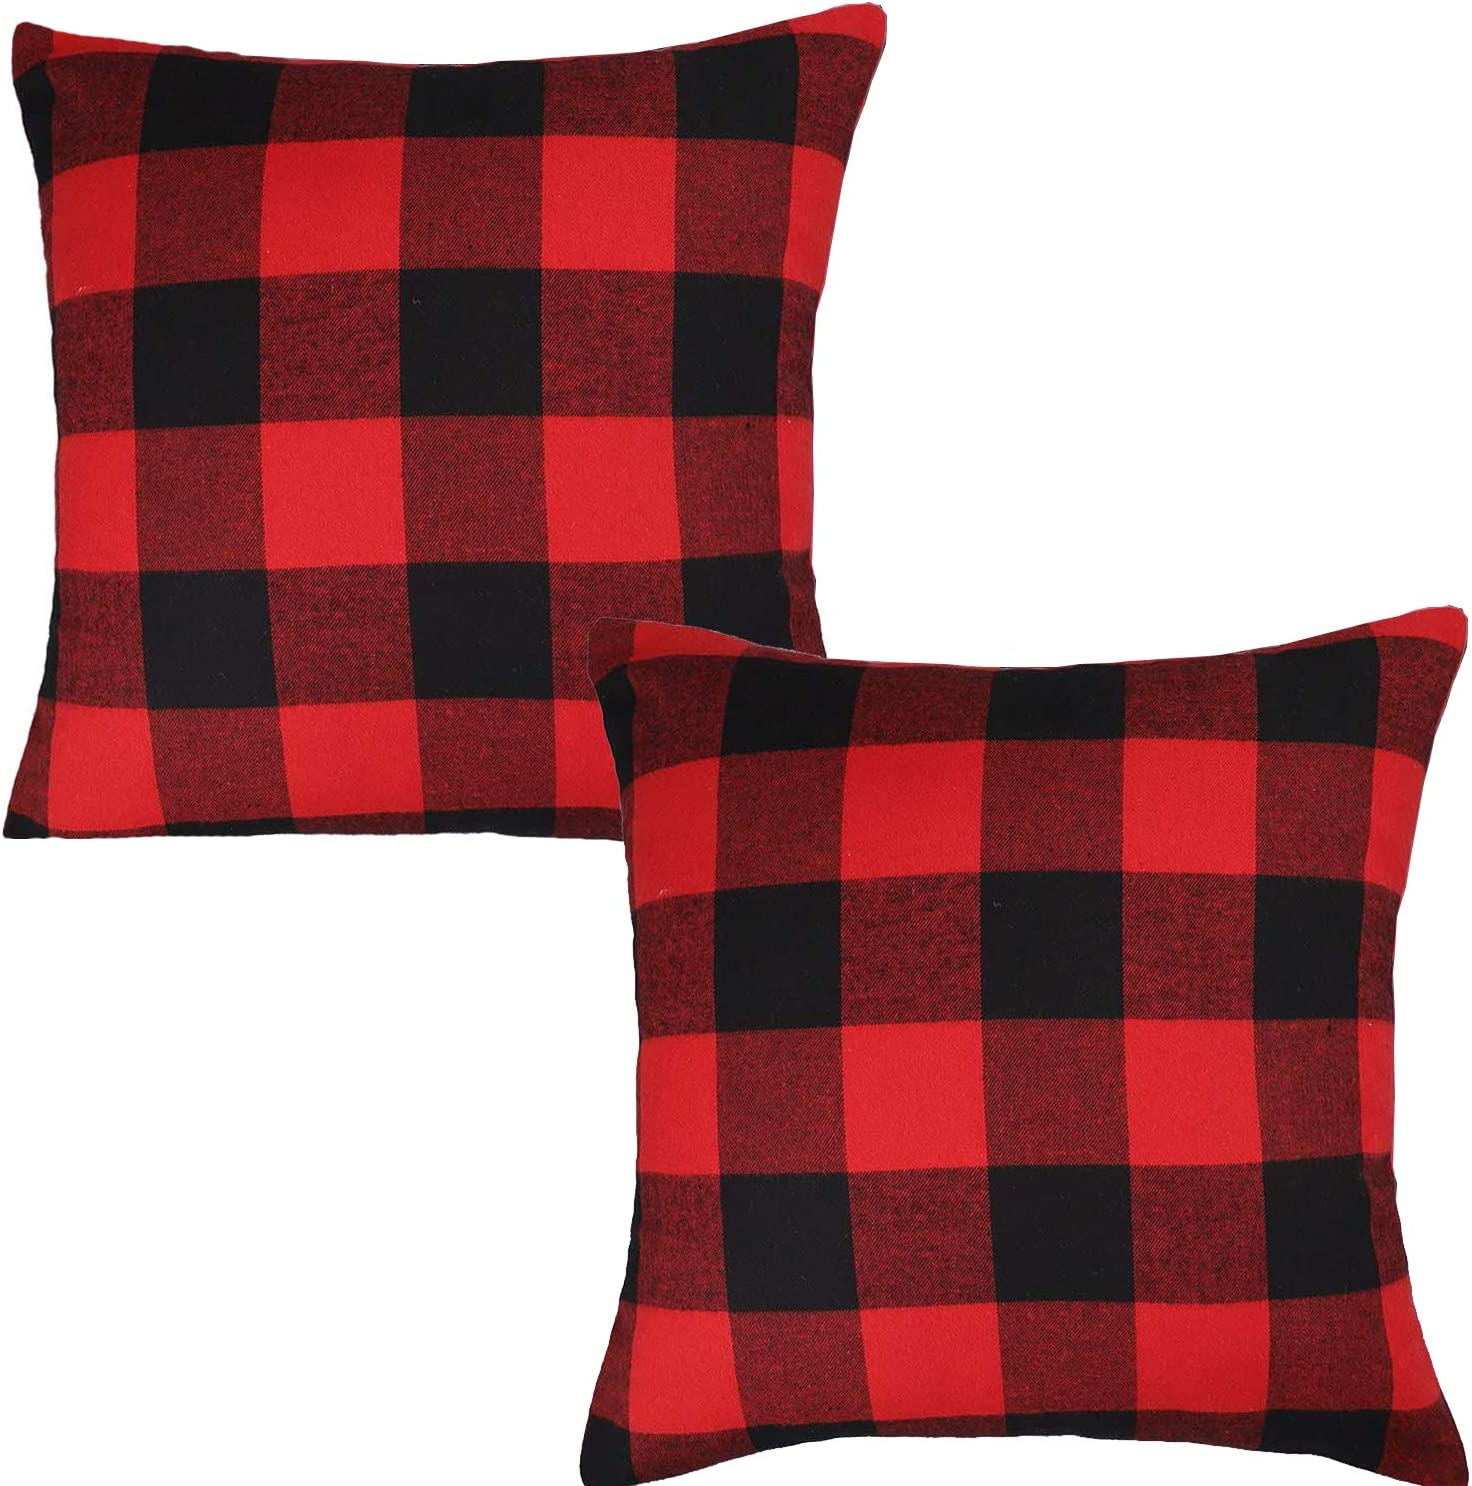 Jashem Plaid Throw Pillow Cover 18x18 Inch Cotton Cushion Cover Black and Red Buffalo Check Pillow Case for Modern Home Decor Set of 2 (Big Plaid red Black)